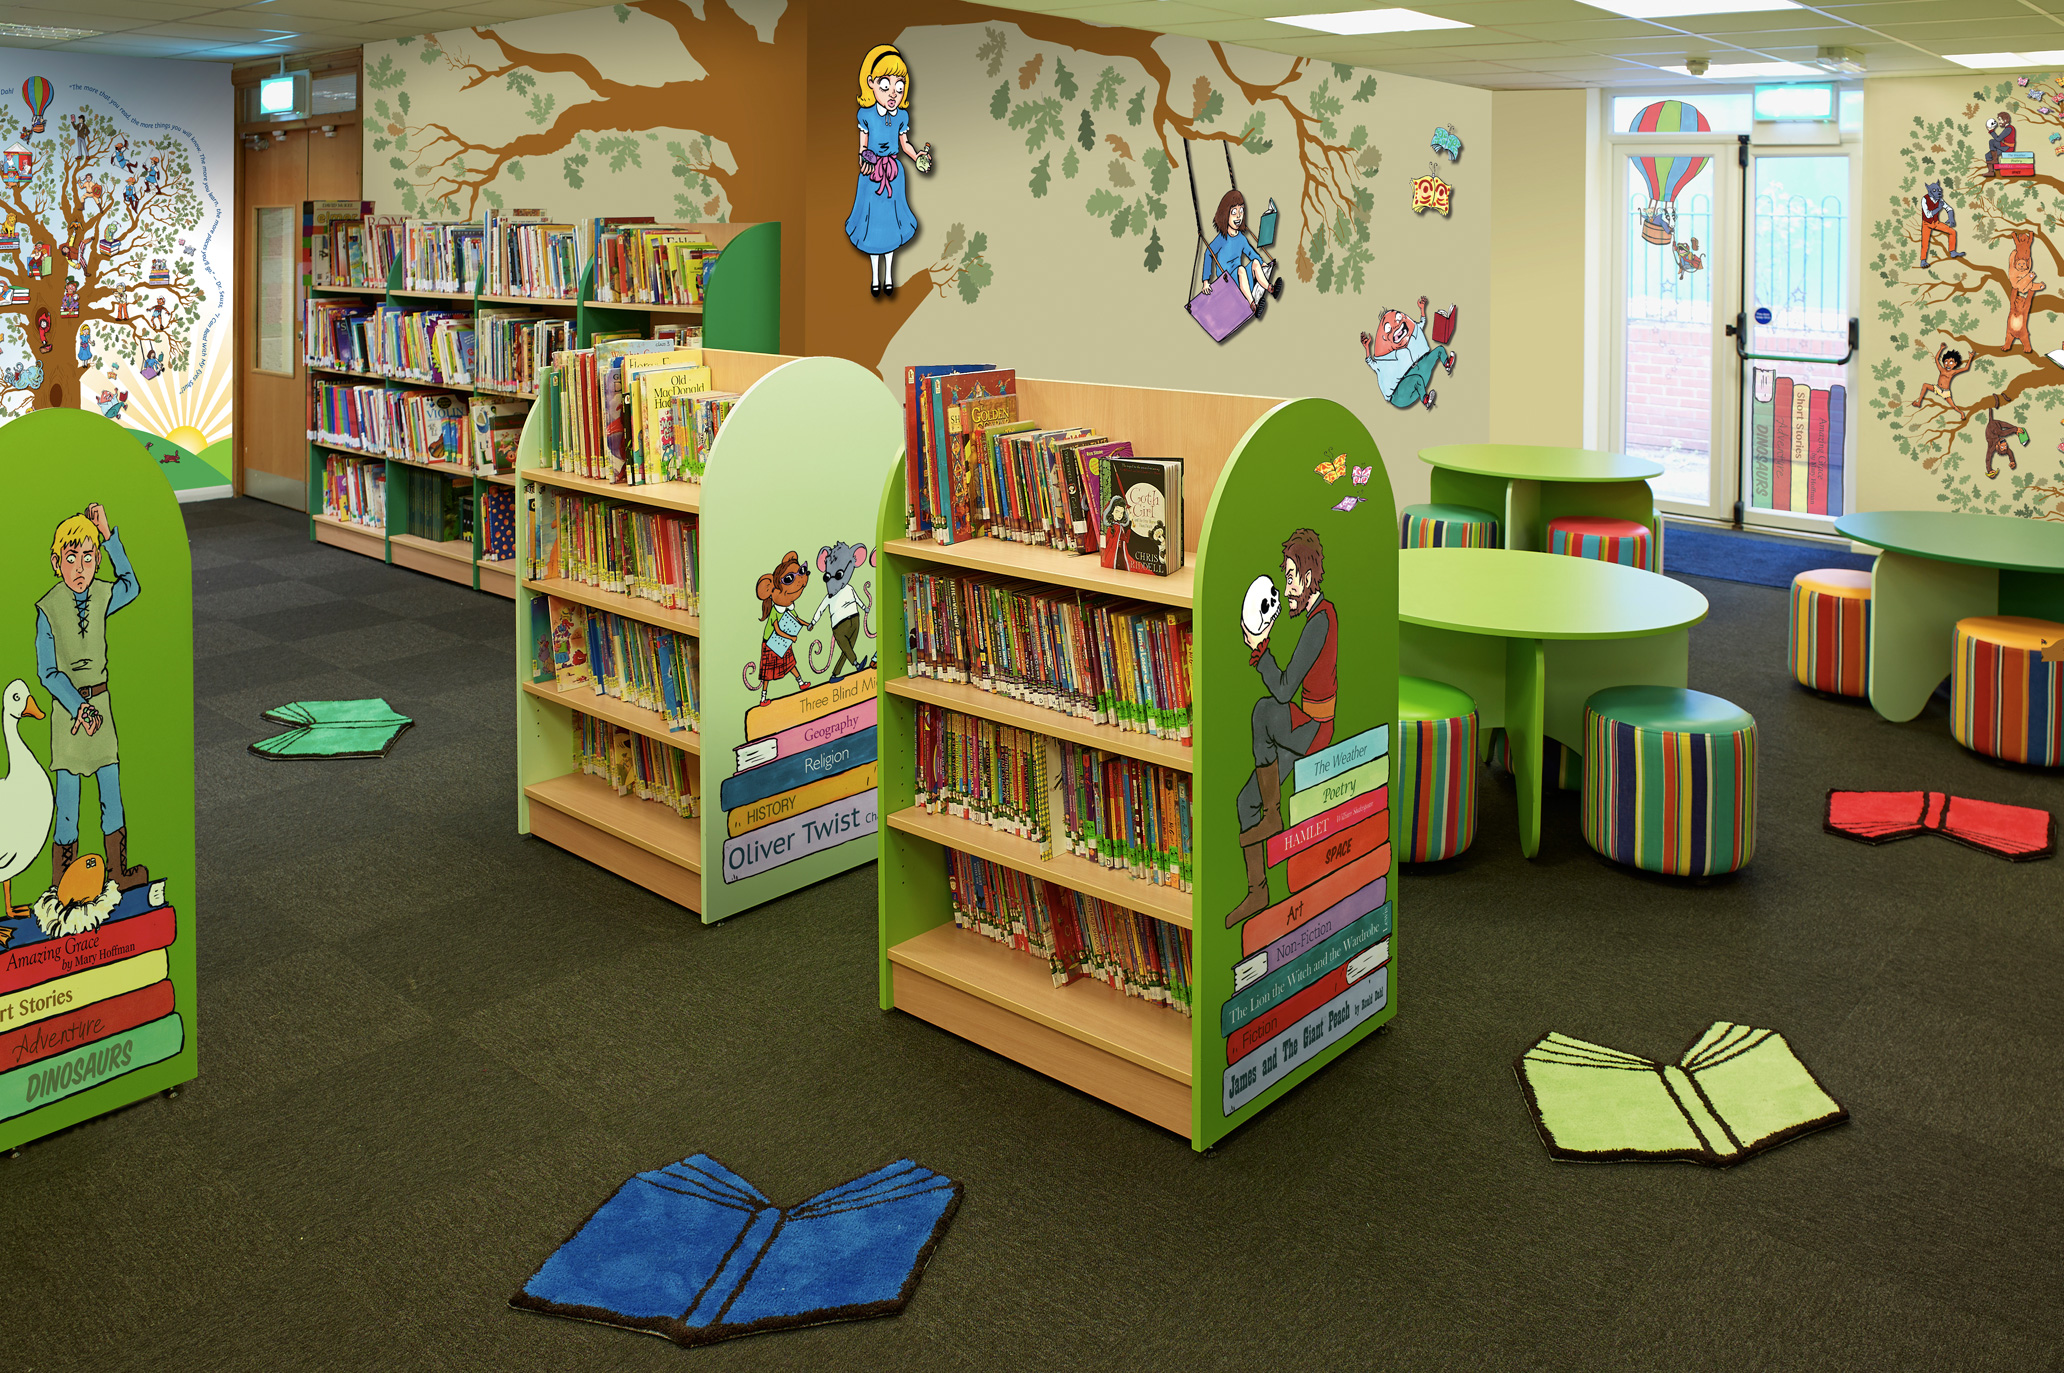 Classroom Literacy Ideas ~ Classroom reading area library displays the magical